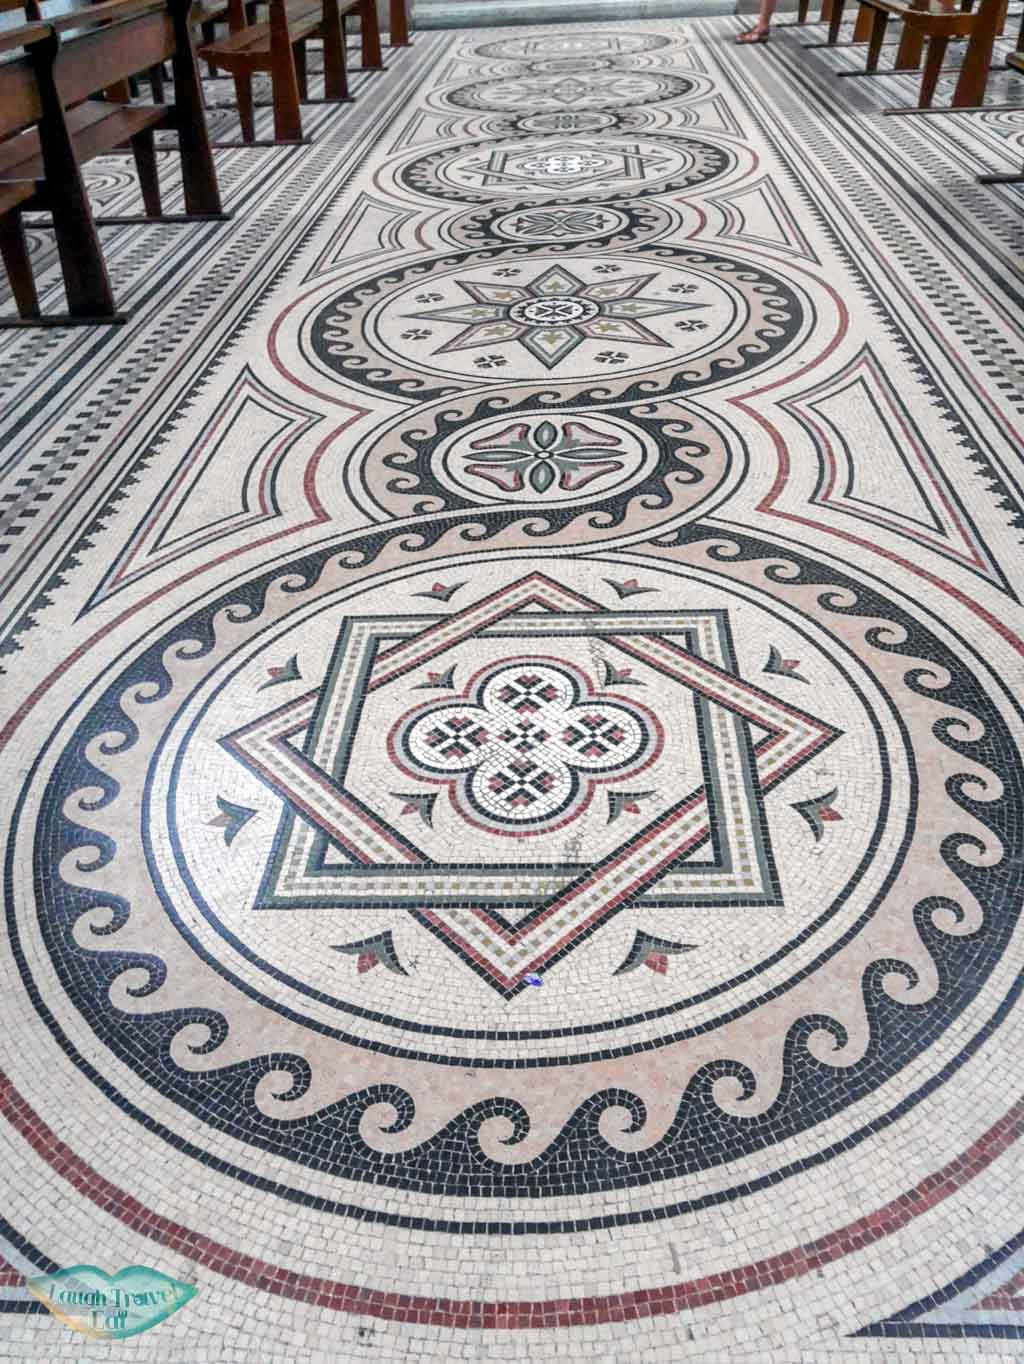 mosaic floor marseille cathedral marseille south of france | Laugh Travel Eat